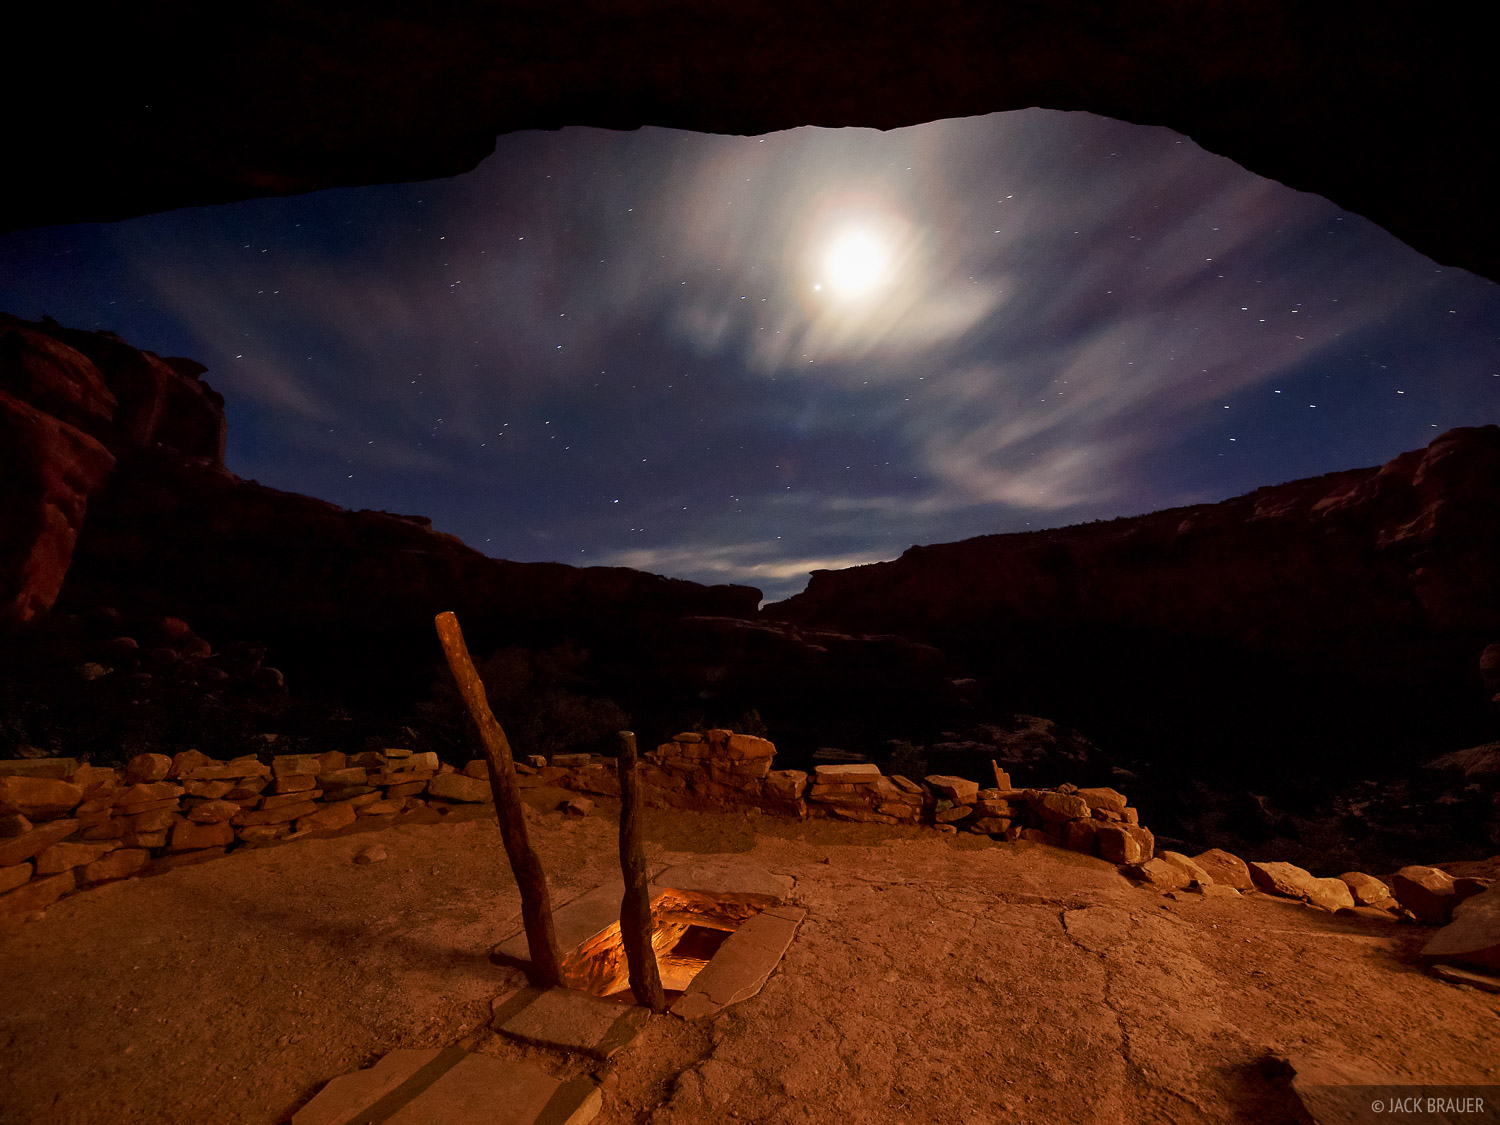 Grand Gulch, kiva, Utah, night, Bears Ears National Monument, photo